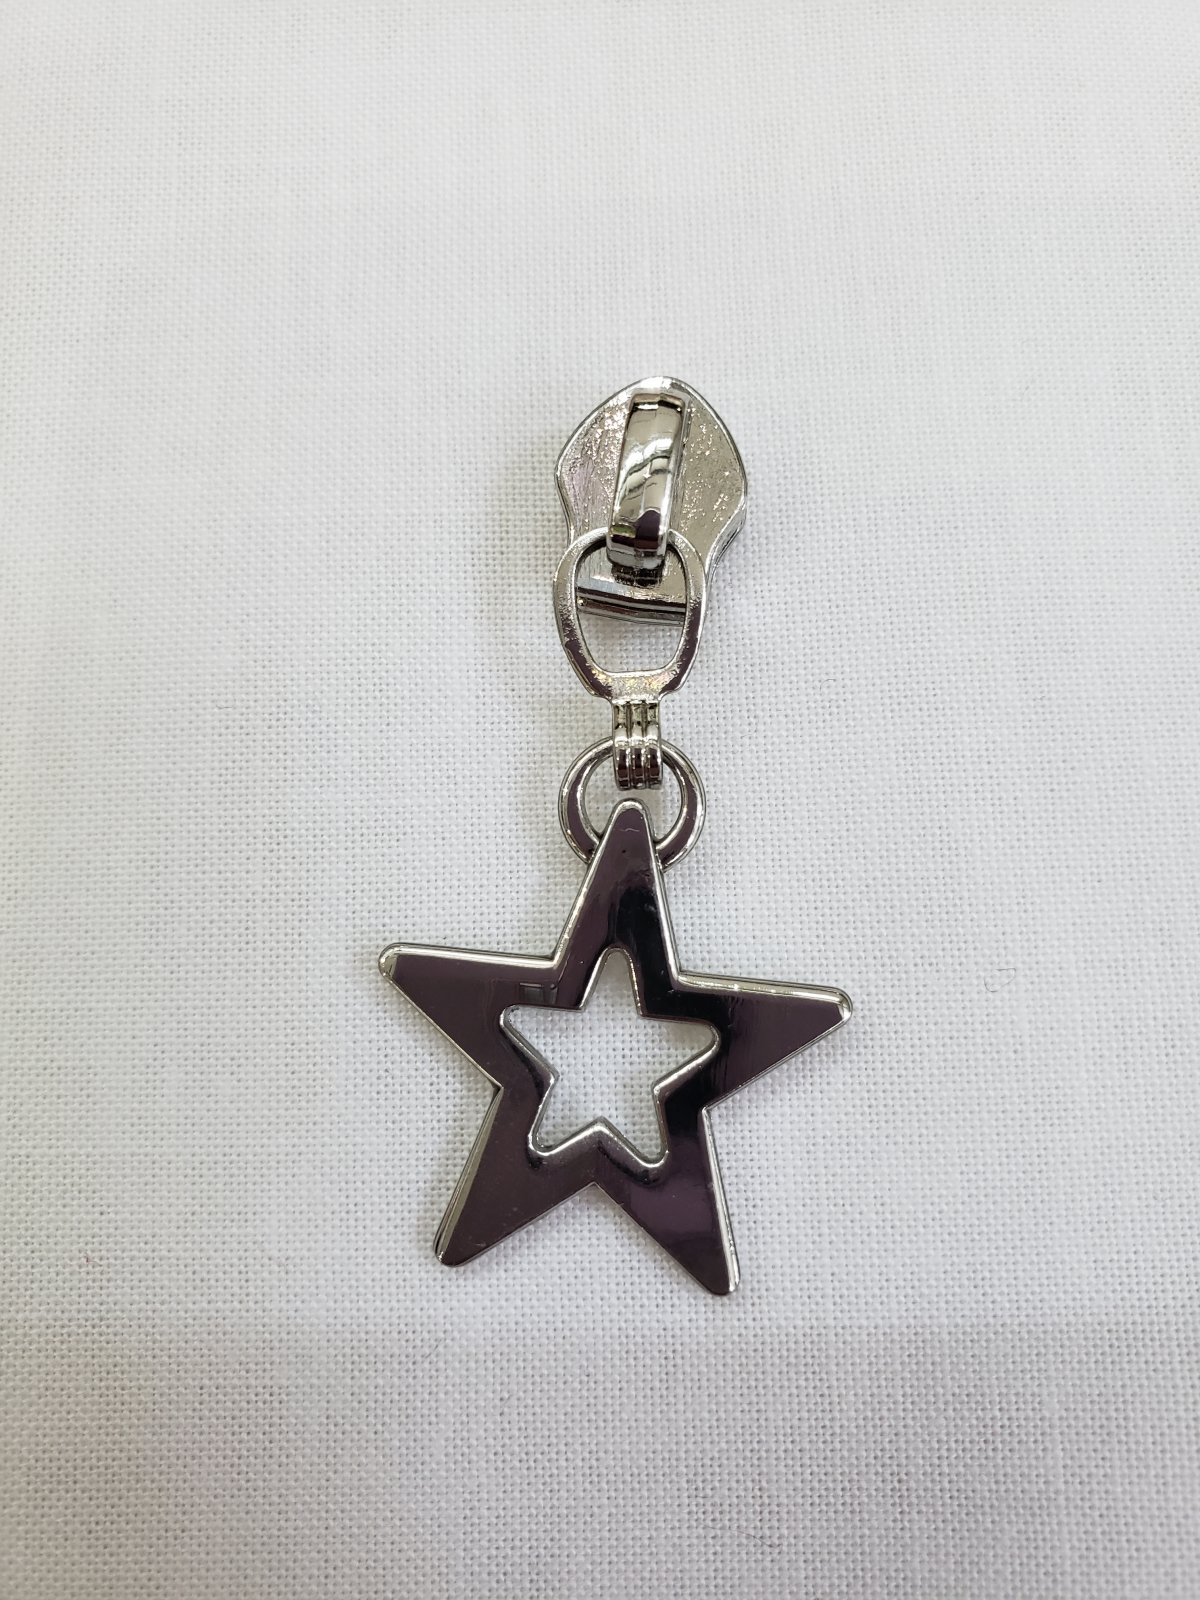 Silver star zipper pull for rainbow zipper